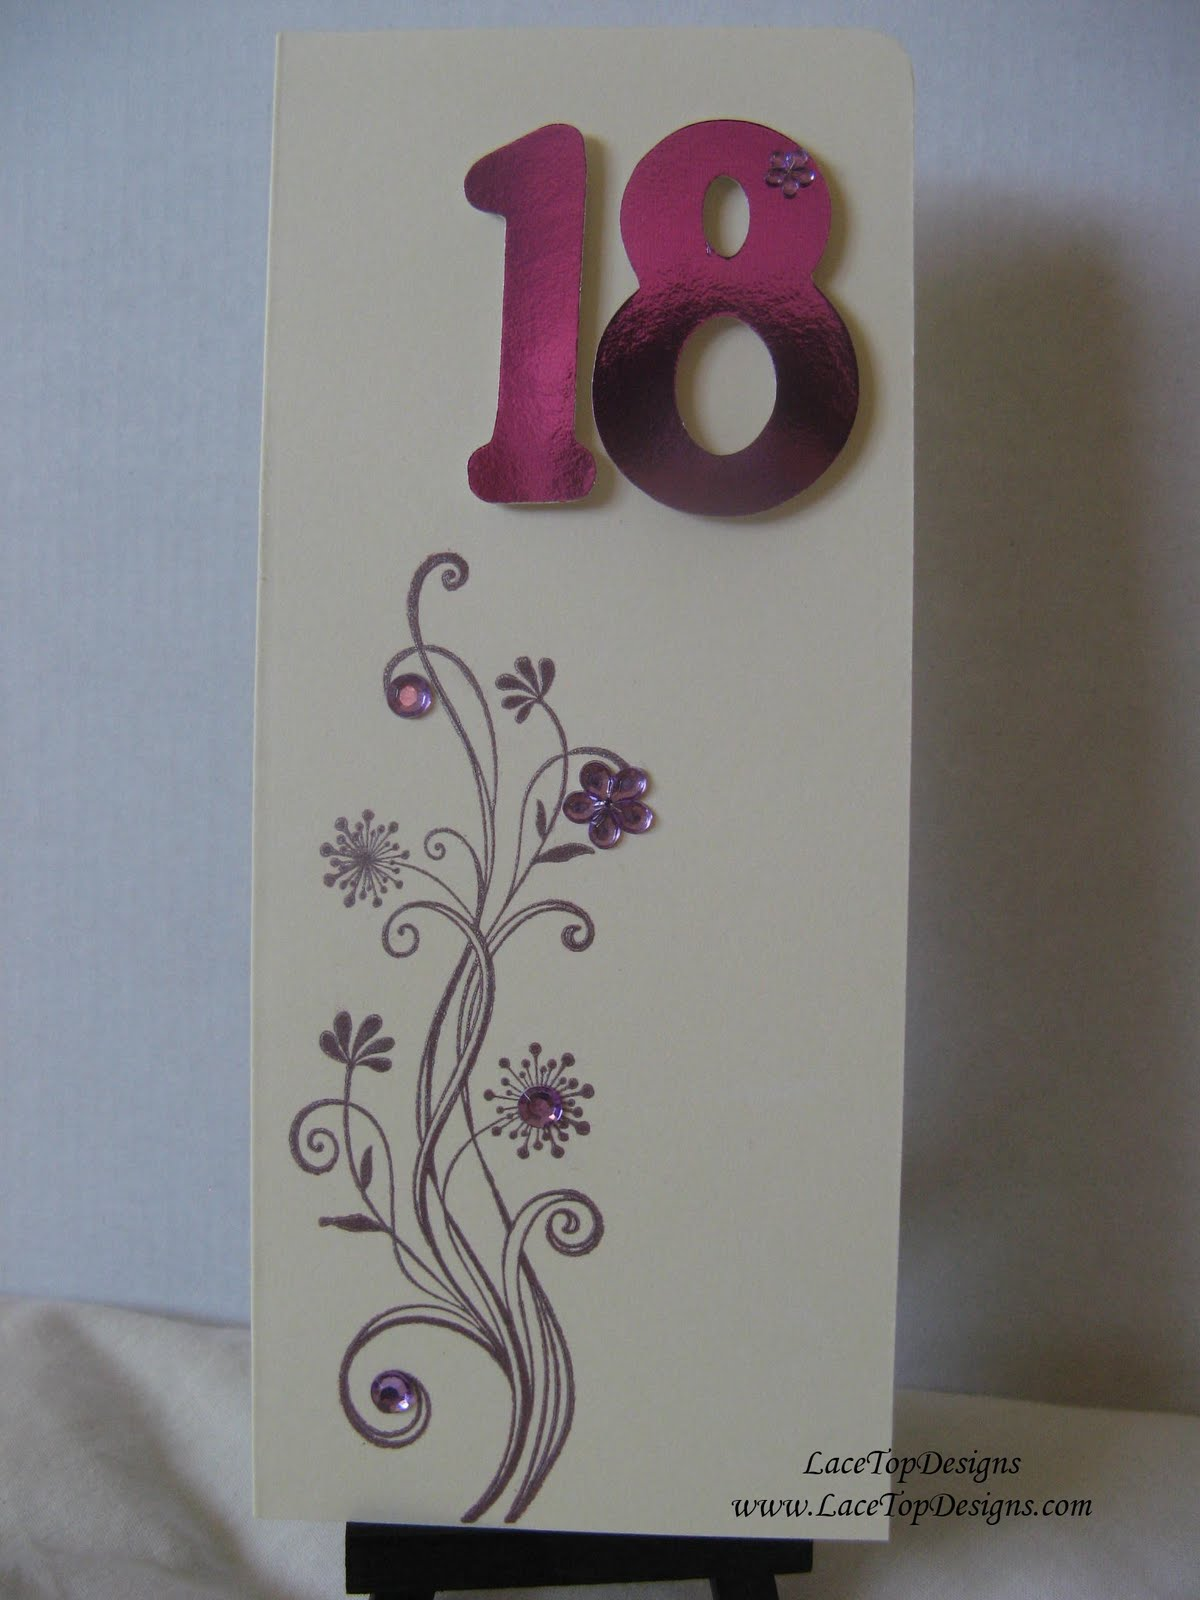 LaceTopDesigns Girly 18th Birthday Card Using Making